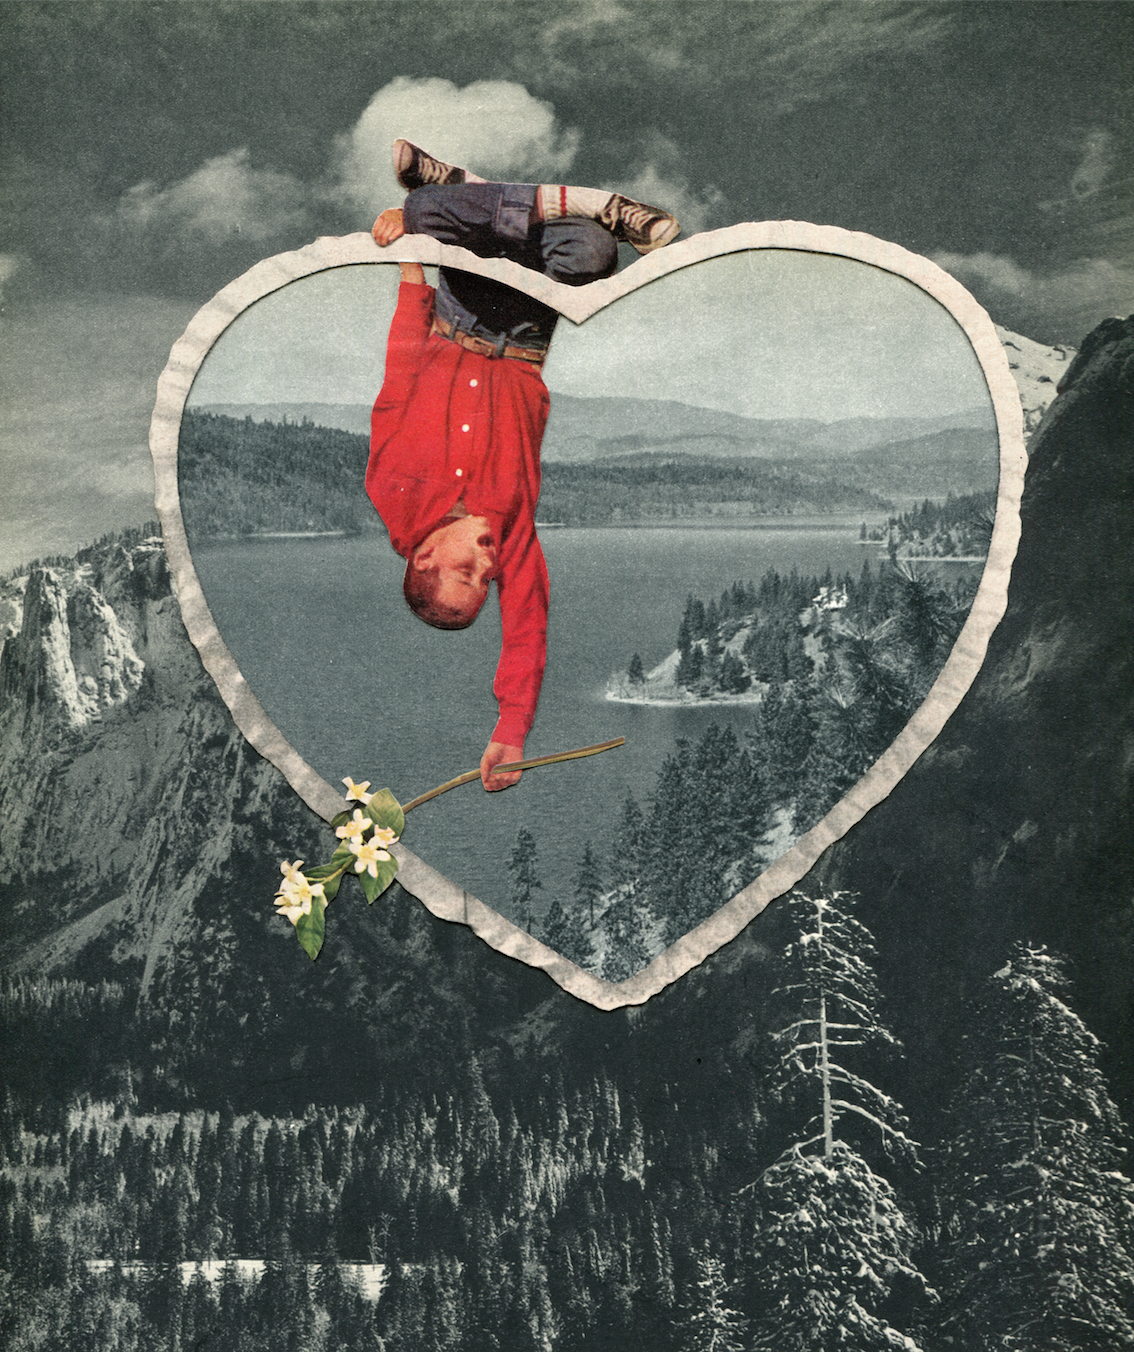 """Jay Riggio All That Was in Your Heart Hand-cut paper from original source material & glue on cold press paper 11 x 15"""""""